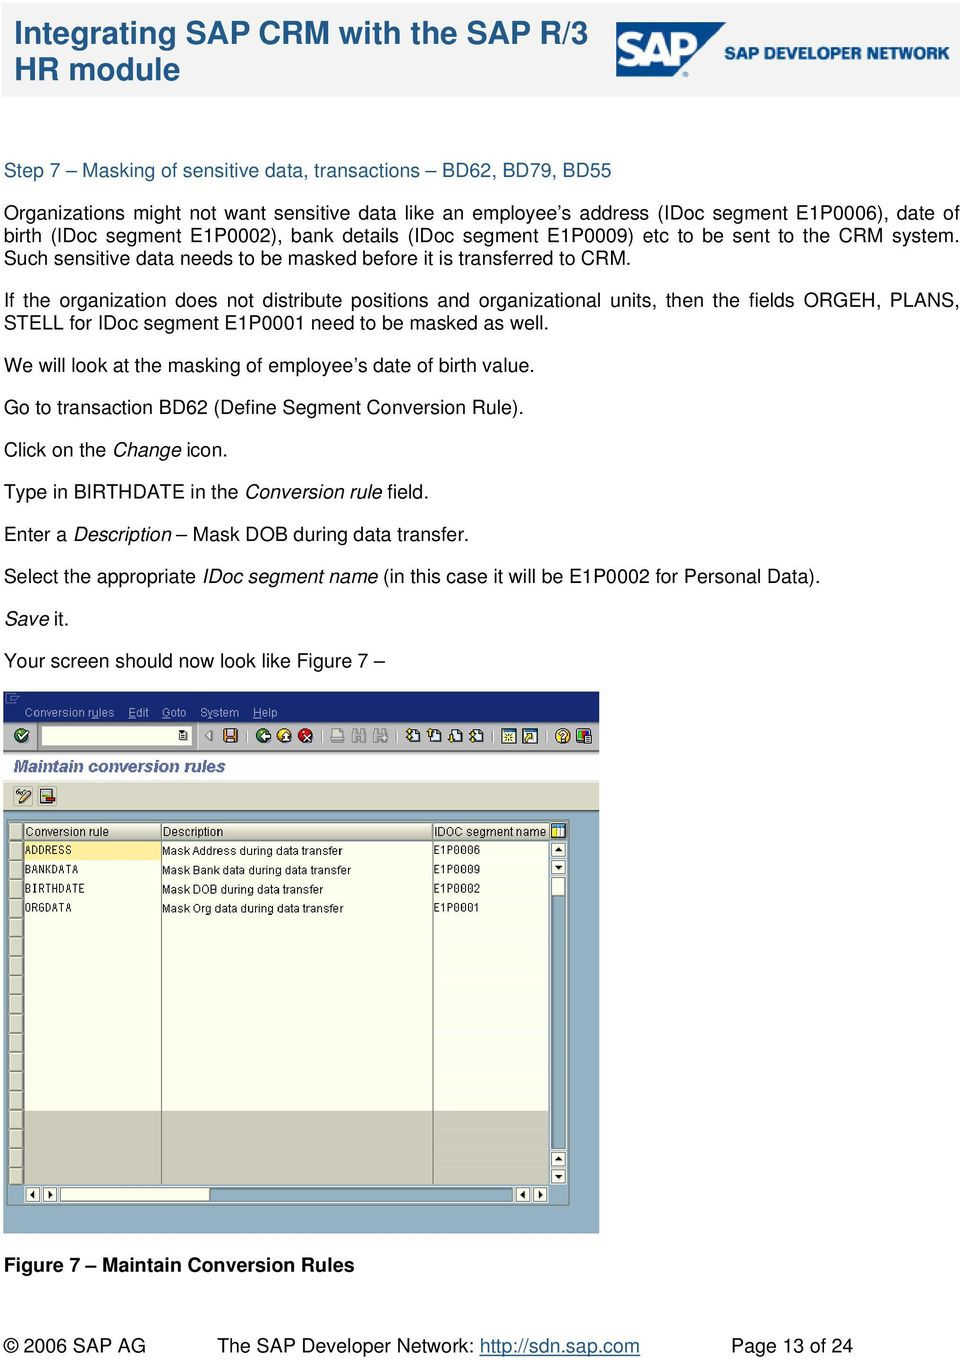 Integrating SAP CRM with the SAP R/3 HR module - PDF